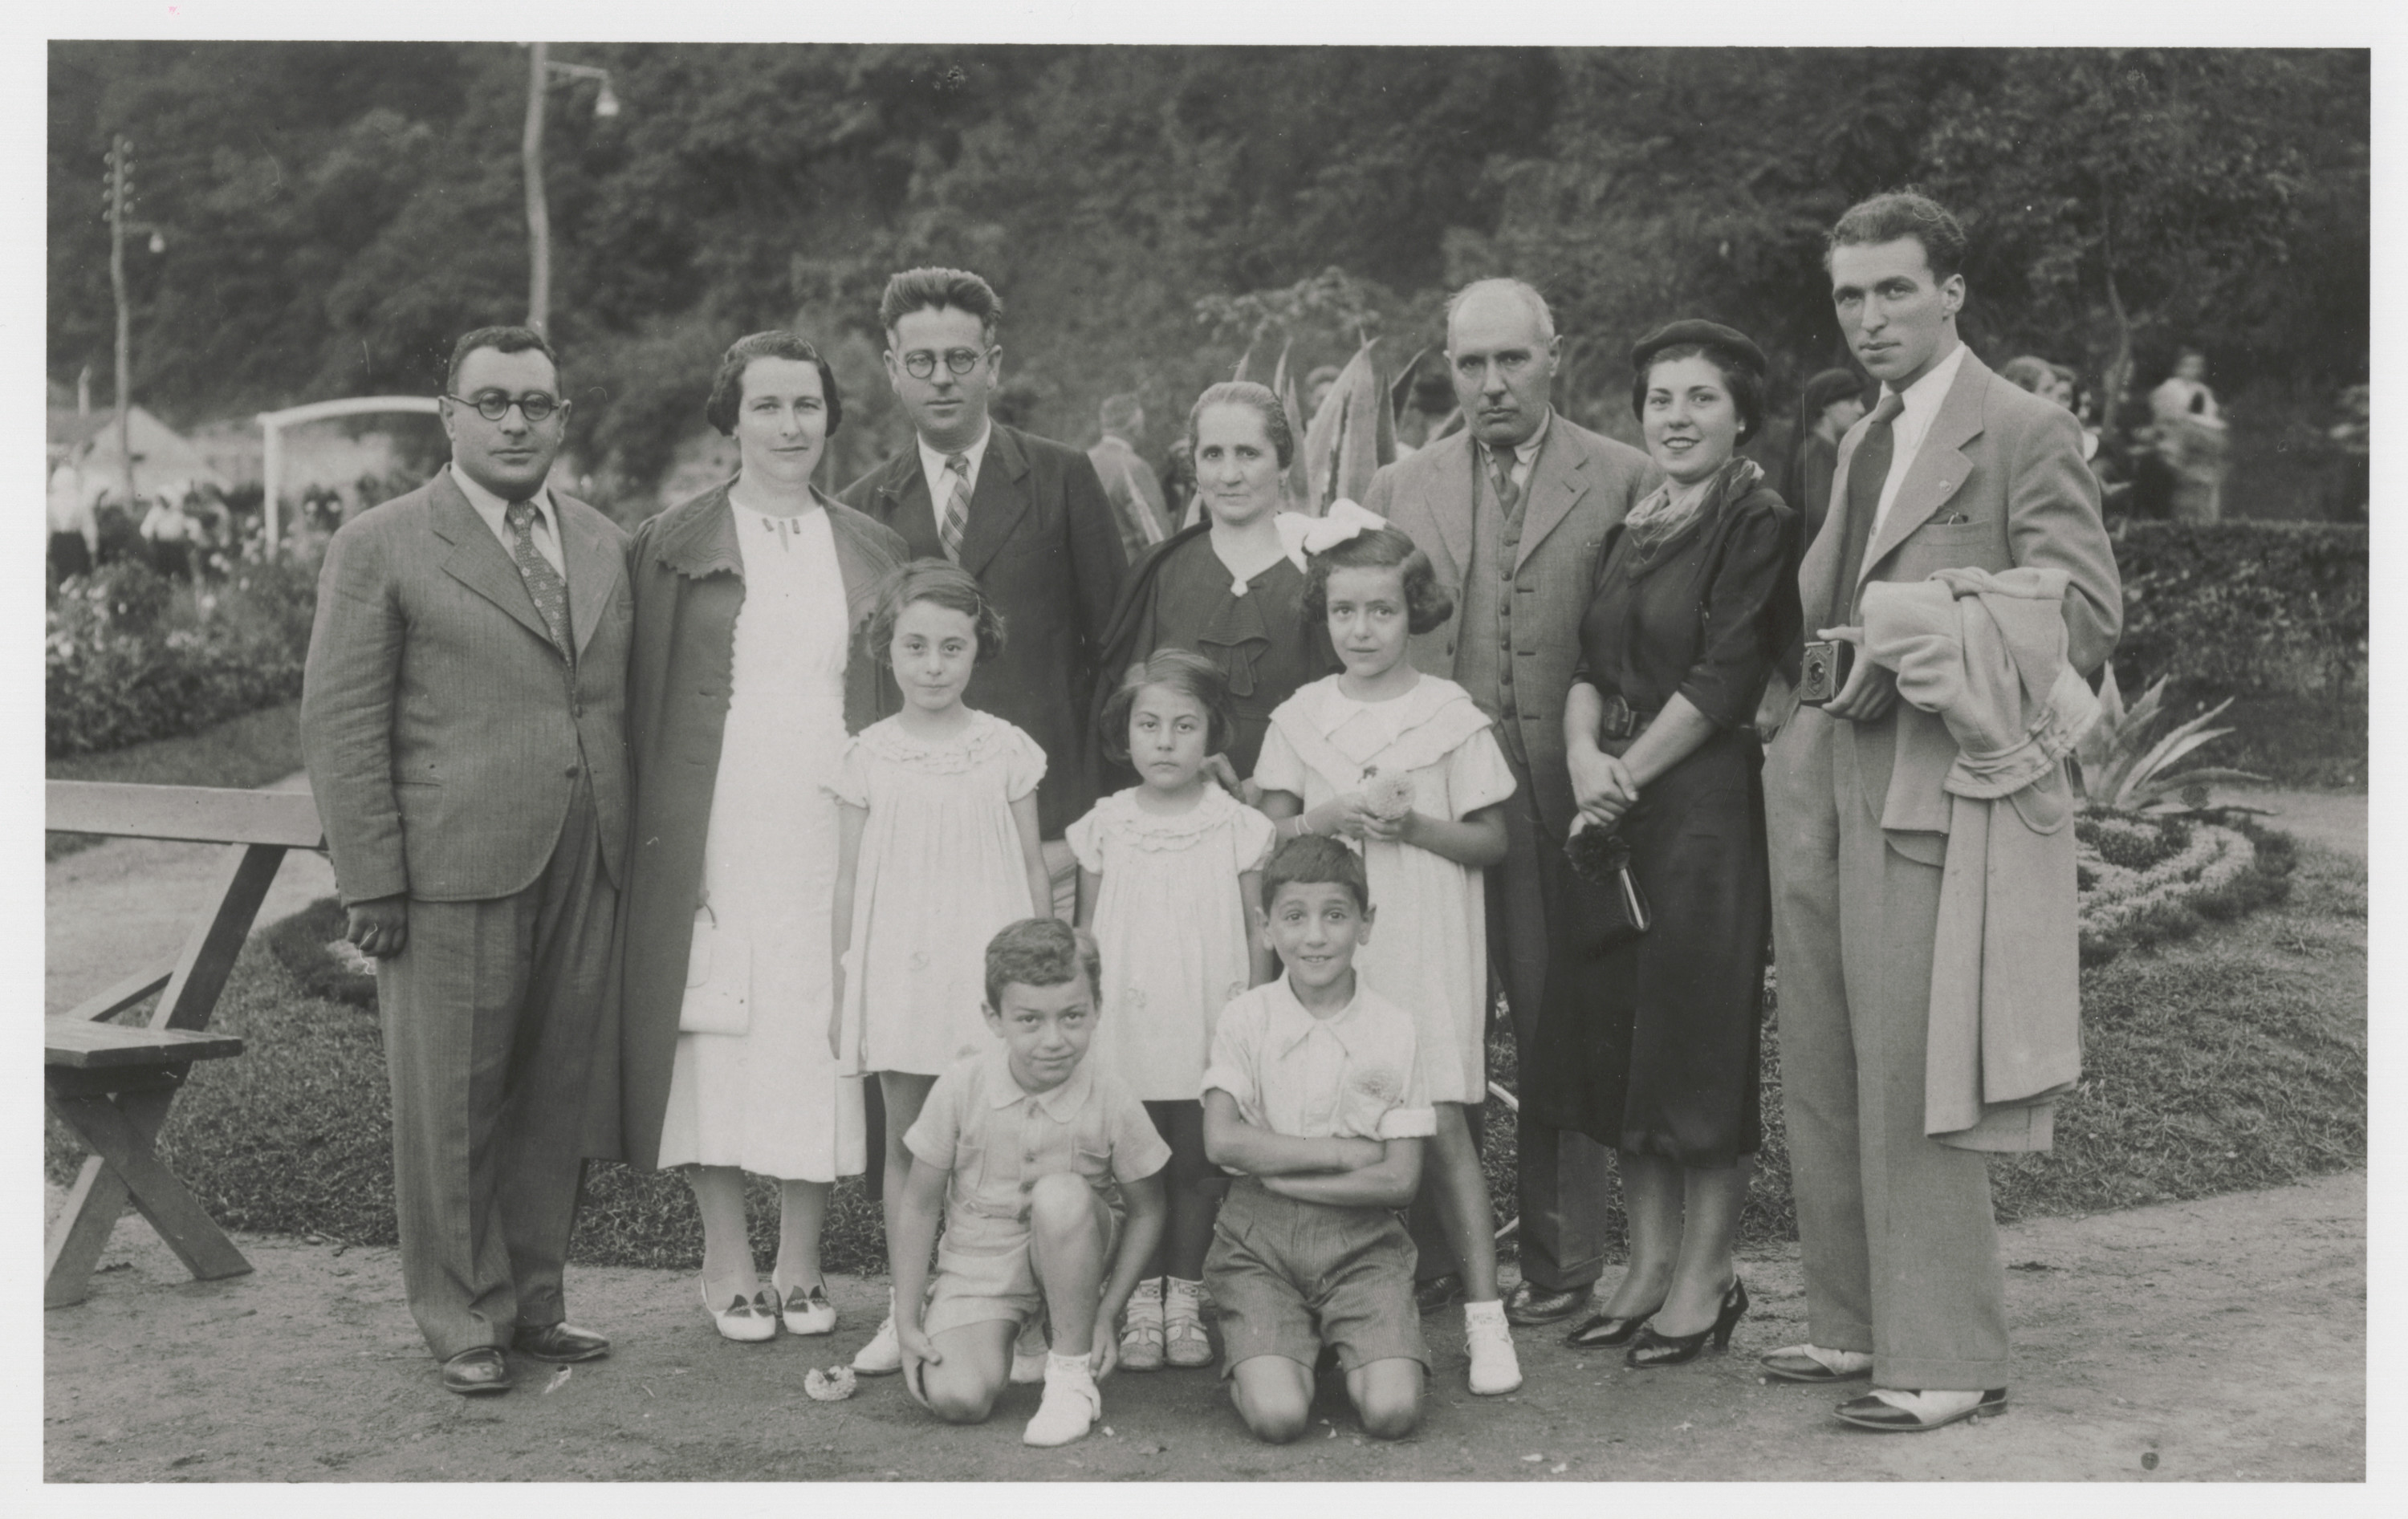 A group of friends on summer vacation at the sulfur baths at Vranjska Banja.  Among those pictured are Mato (nee Franco) Nahmias (back row, fourth from left), Avram Nahmias (back row, third from right), and Victor Nahmias (kneeling in front, on the right).